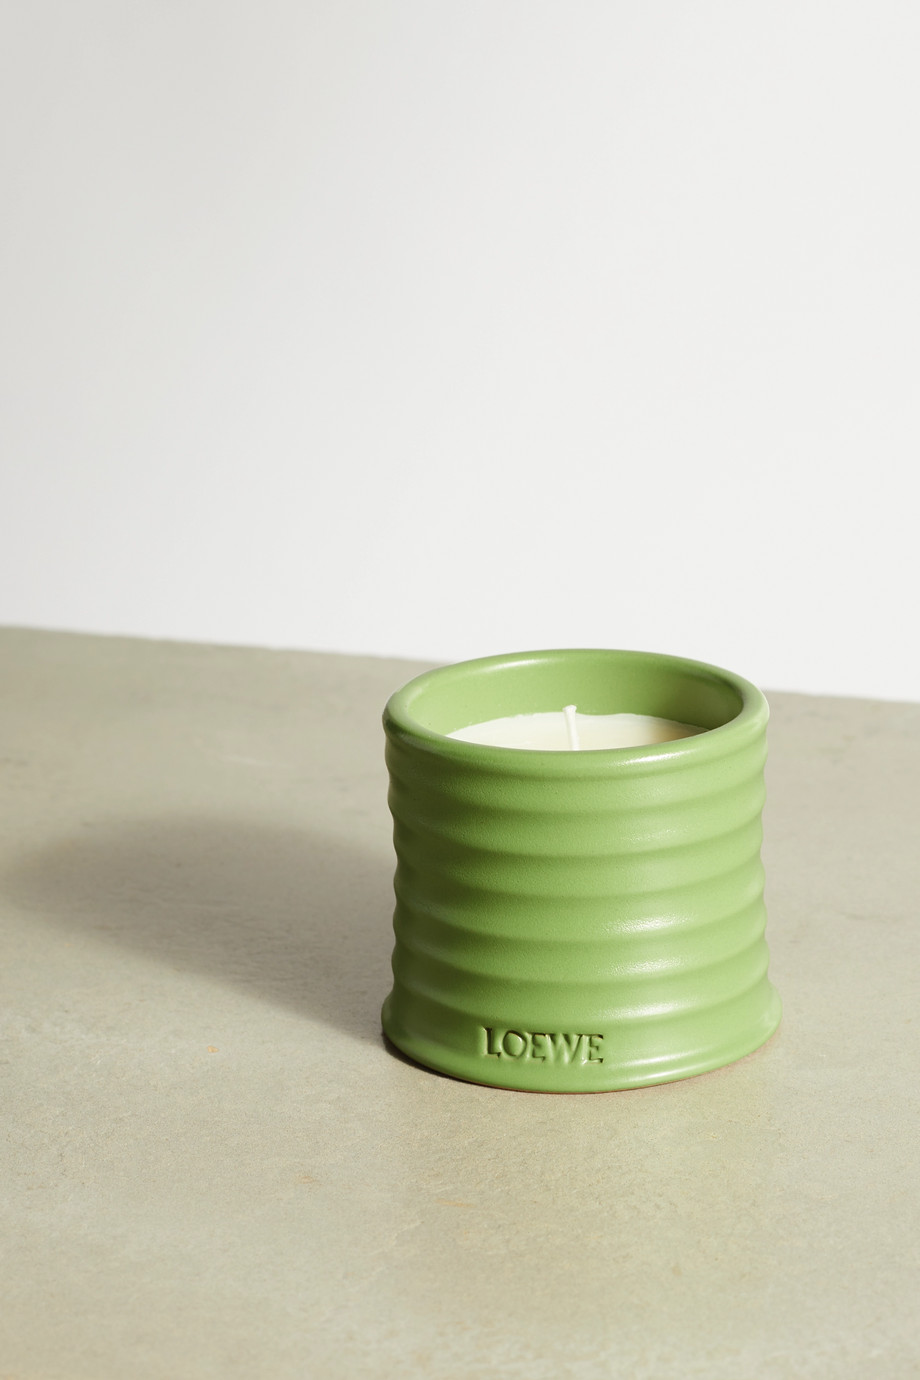 LOEWE Home Scents Bougie parfumée aux pois gourmands Small, 170 g